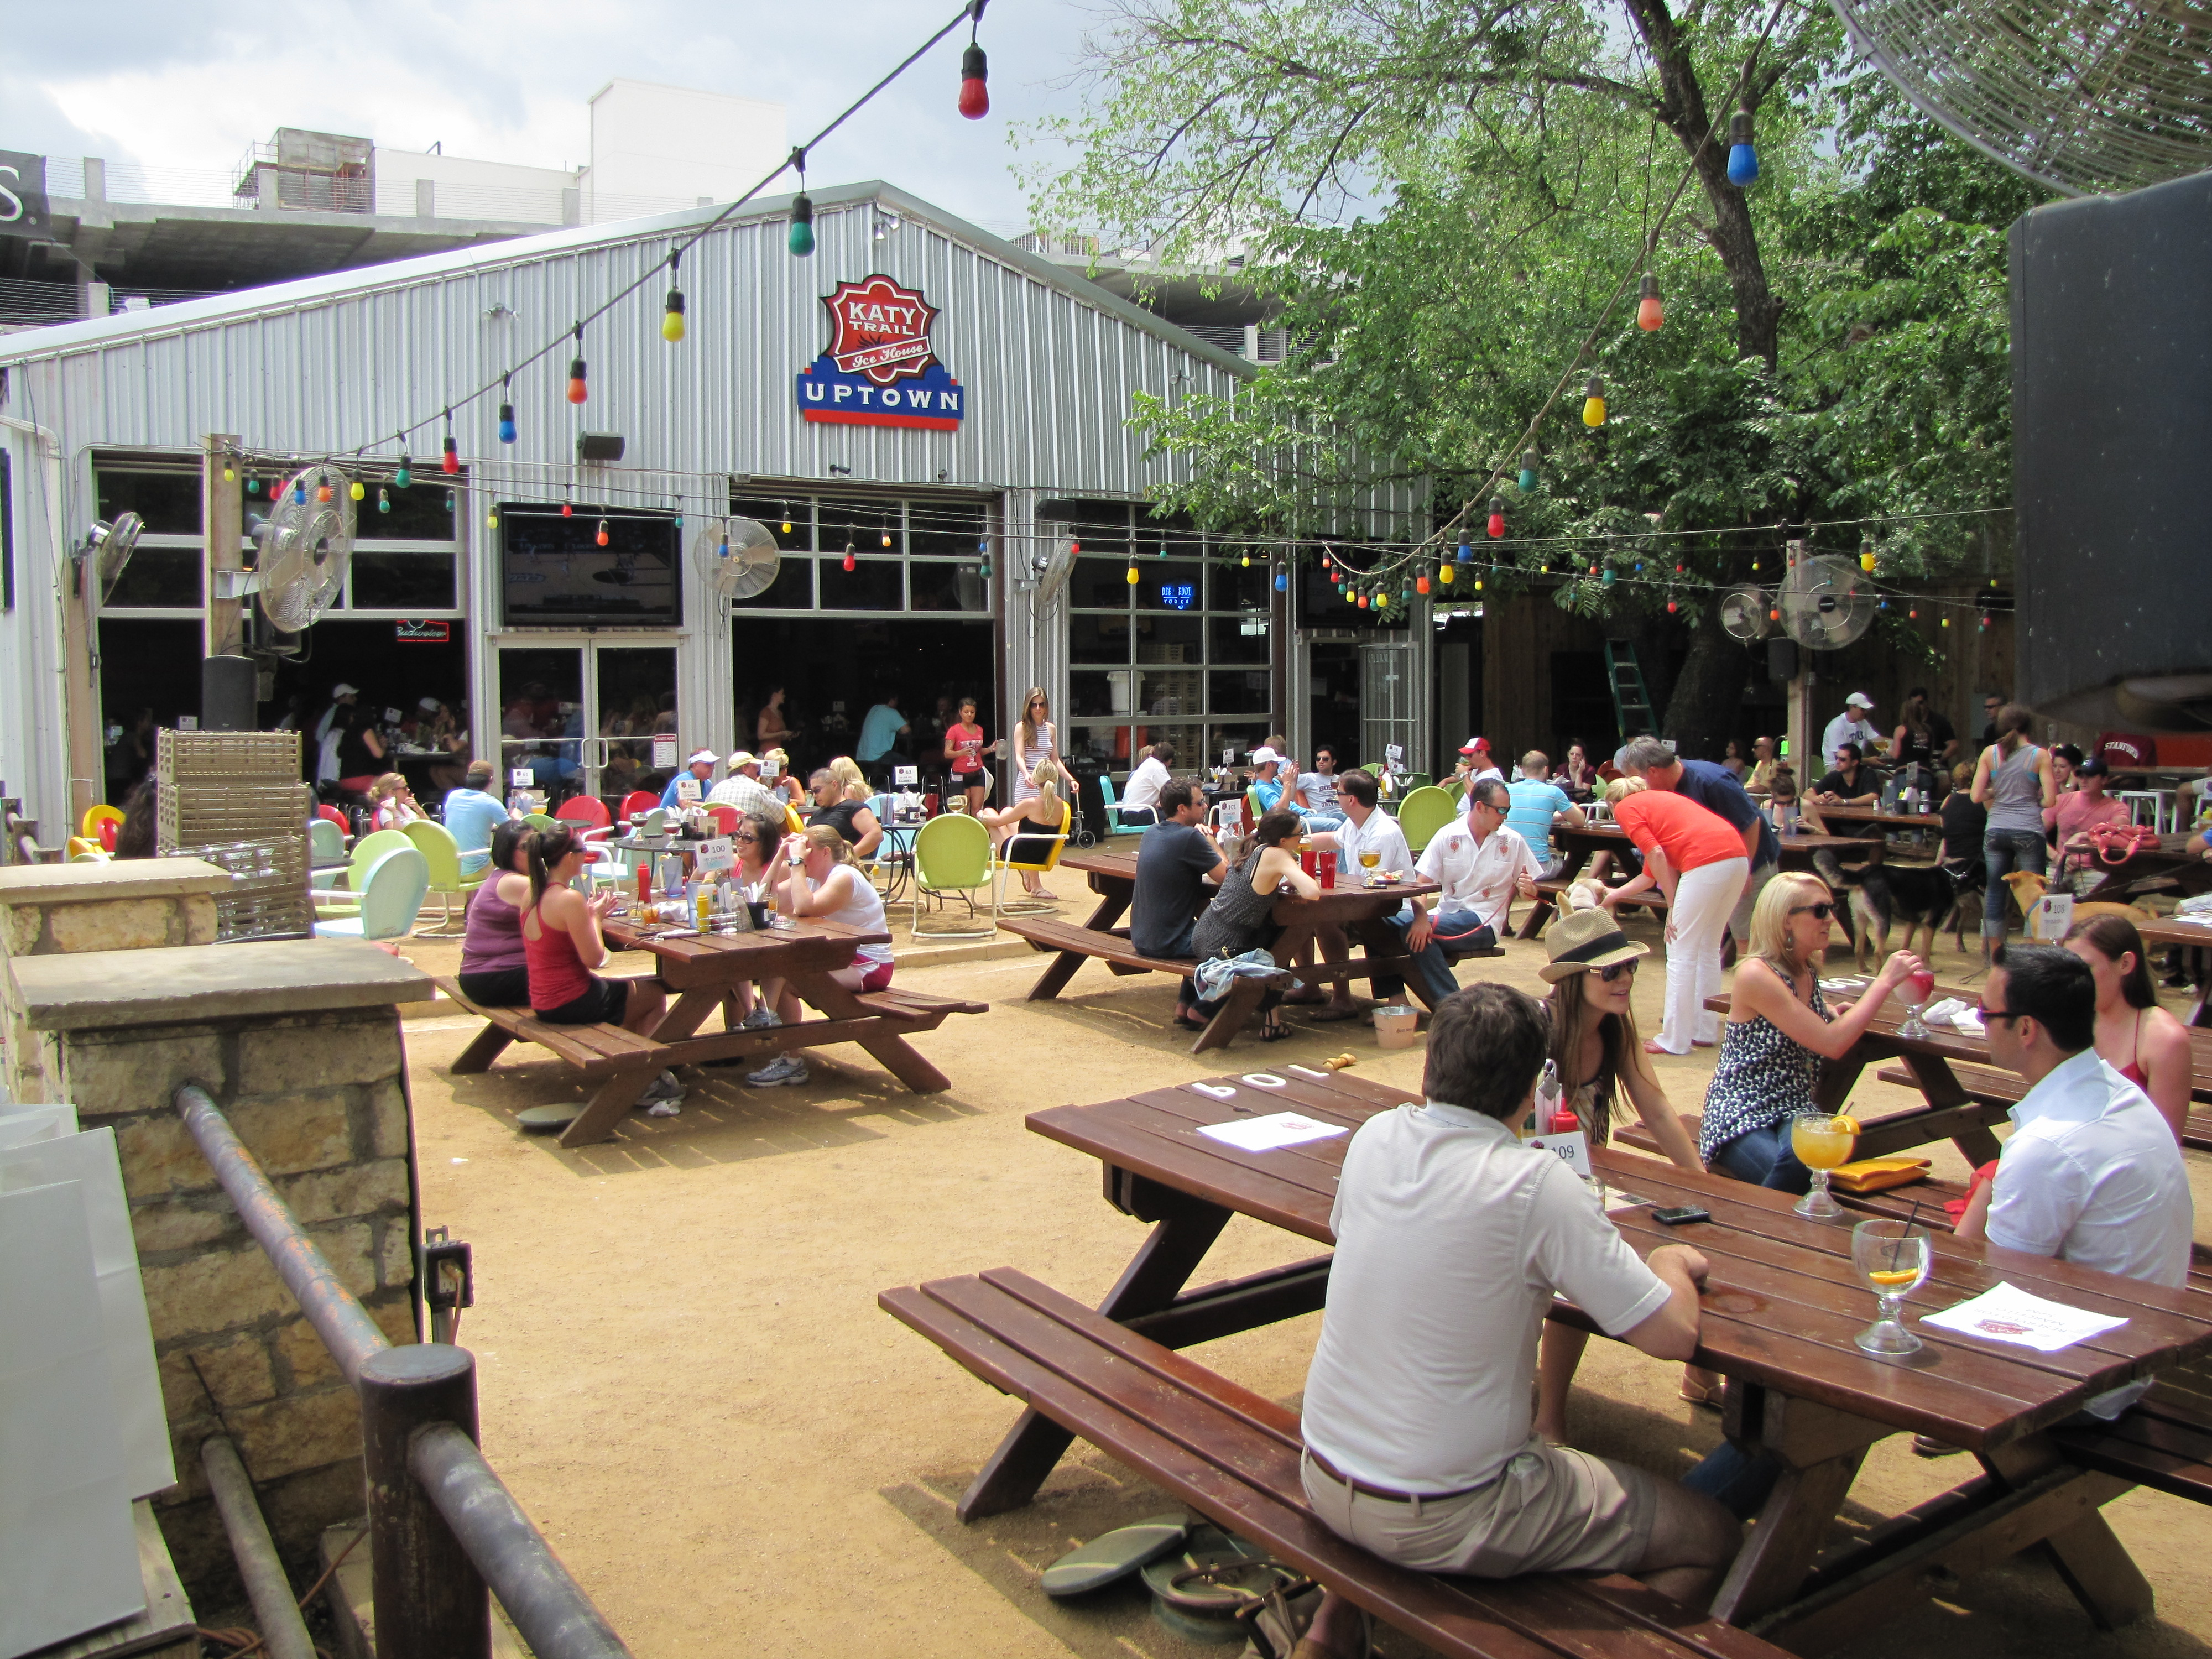 Katy Trail Ice House Has Awesome Barbecue | cravedfw